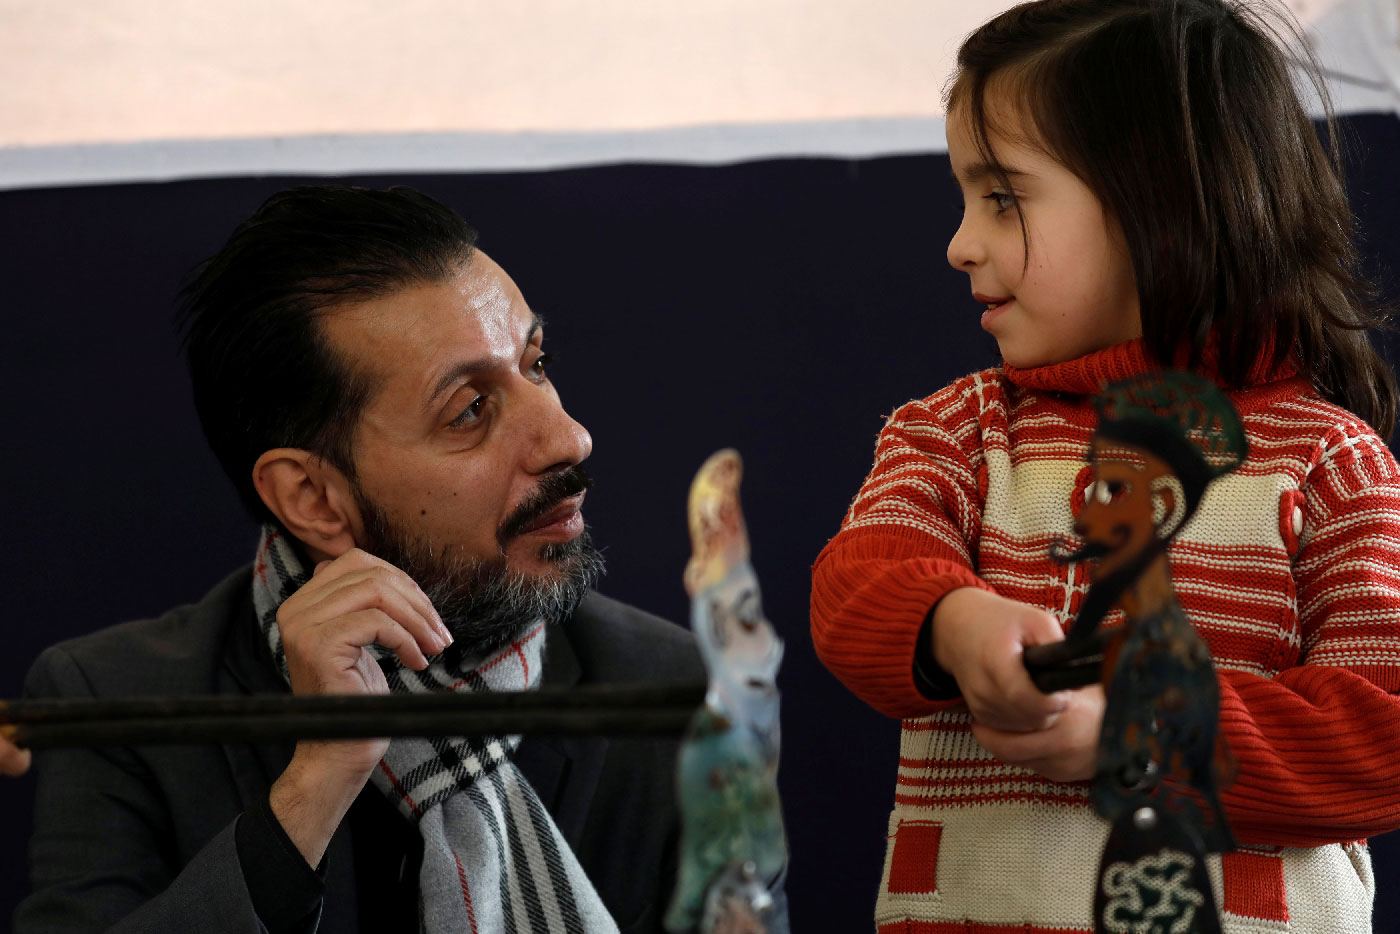 Shadi al-Hallaq, a puppeteer, is seen next to a disabled child during a performance in Damascus, Syria December 3, 2018.